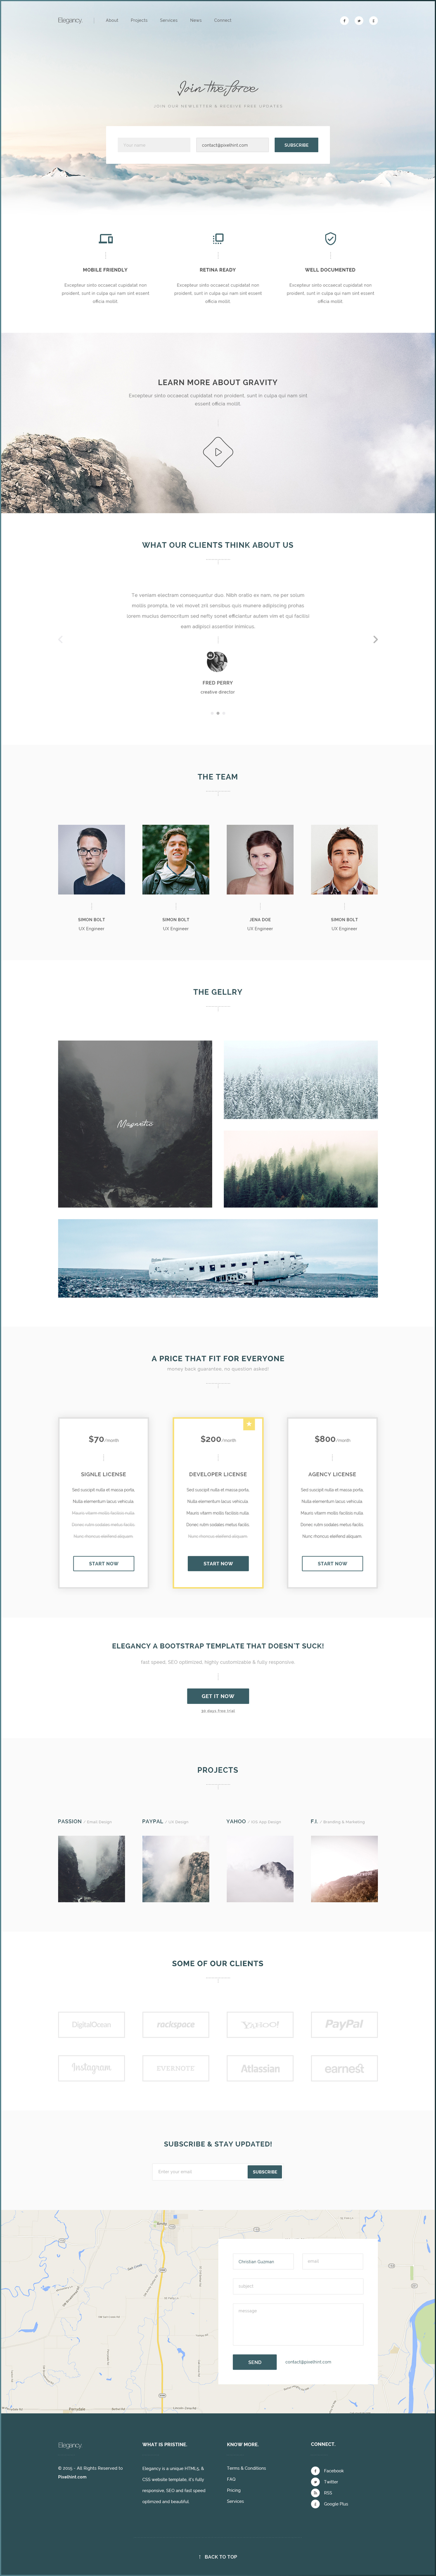 Elegancy: Single Page Template [PSD]